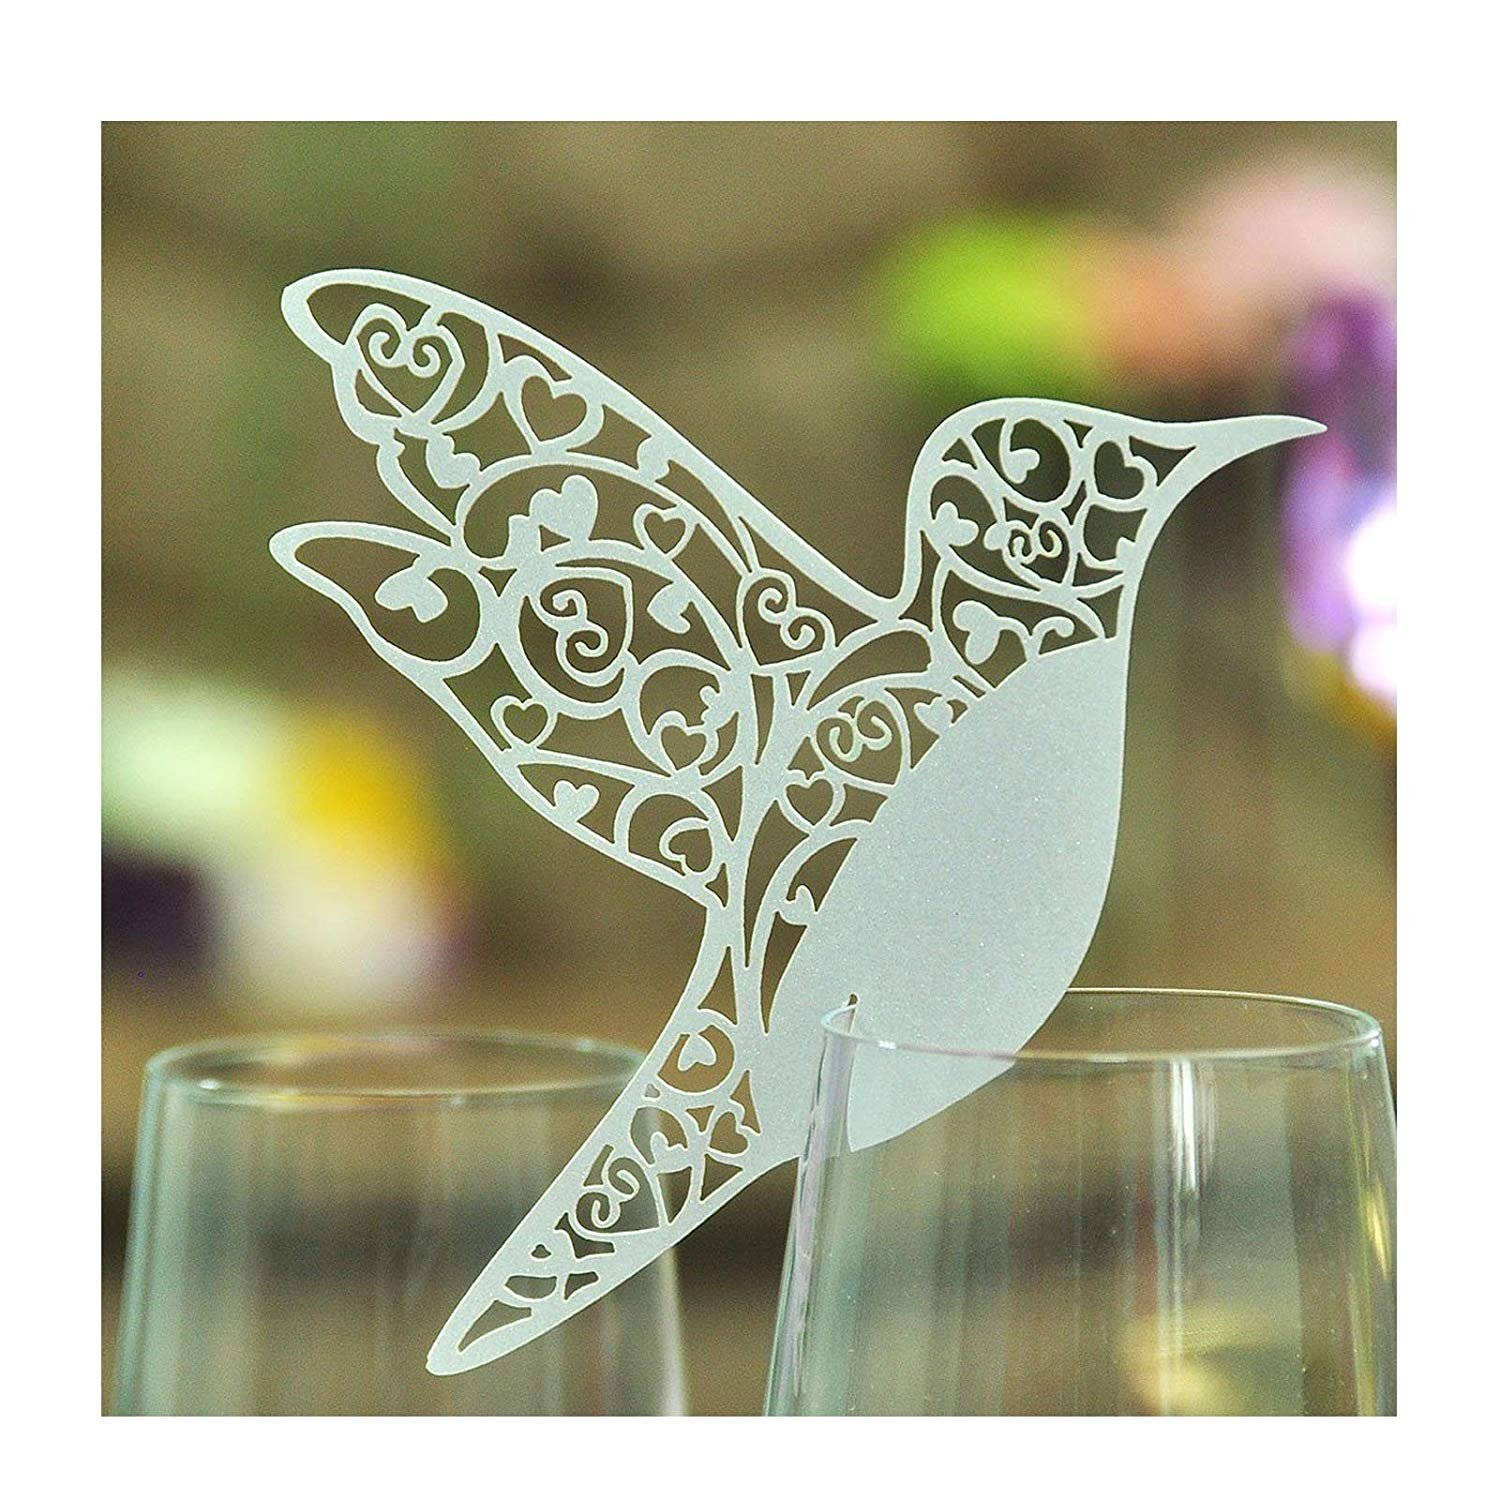 Lyanther Laser cut Hummingbird Name Place Cards, Pack of 50, White